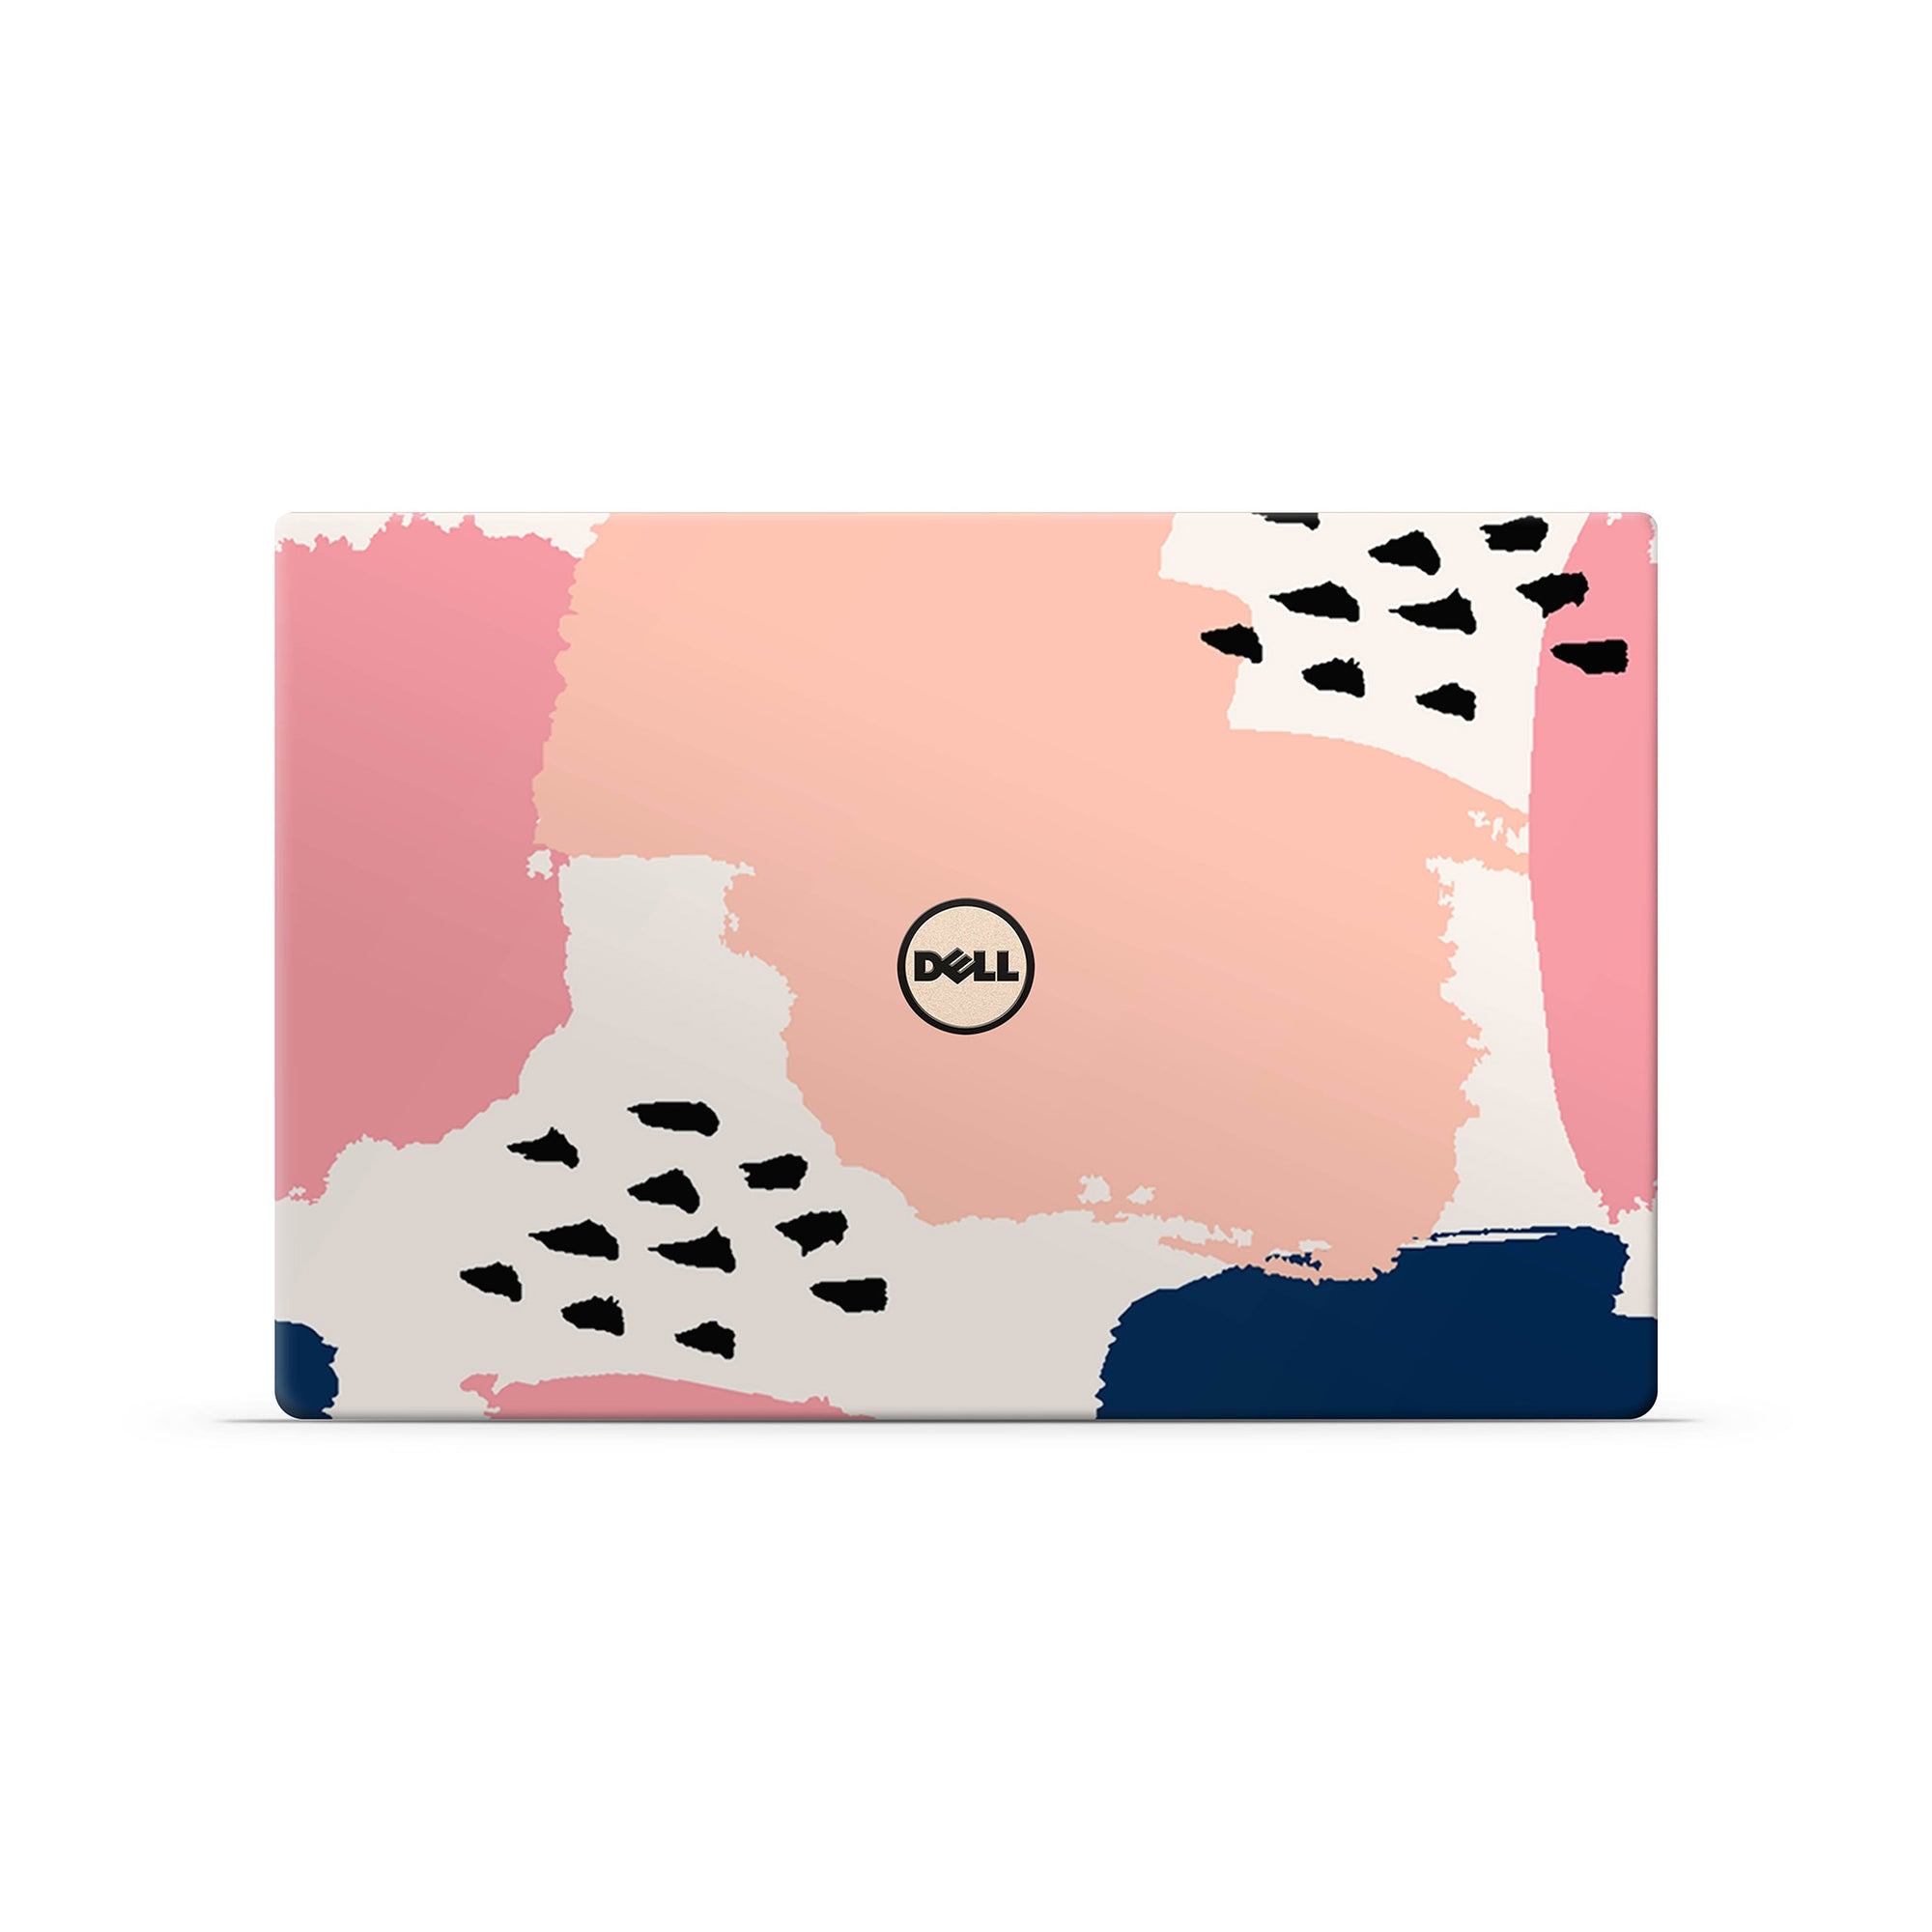 Miami Vice XPS 15 (9500) Skin